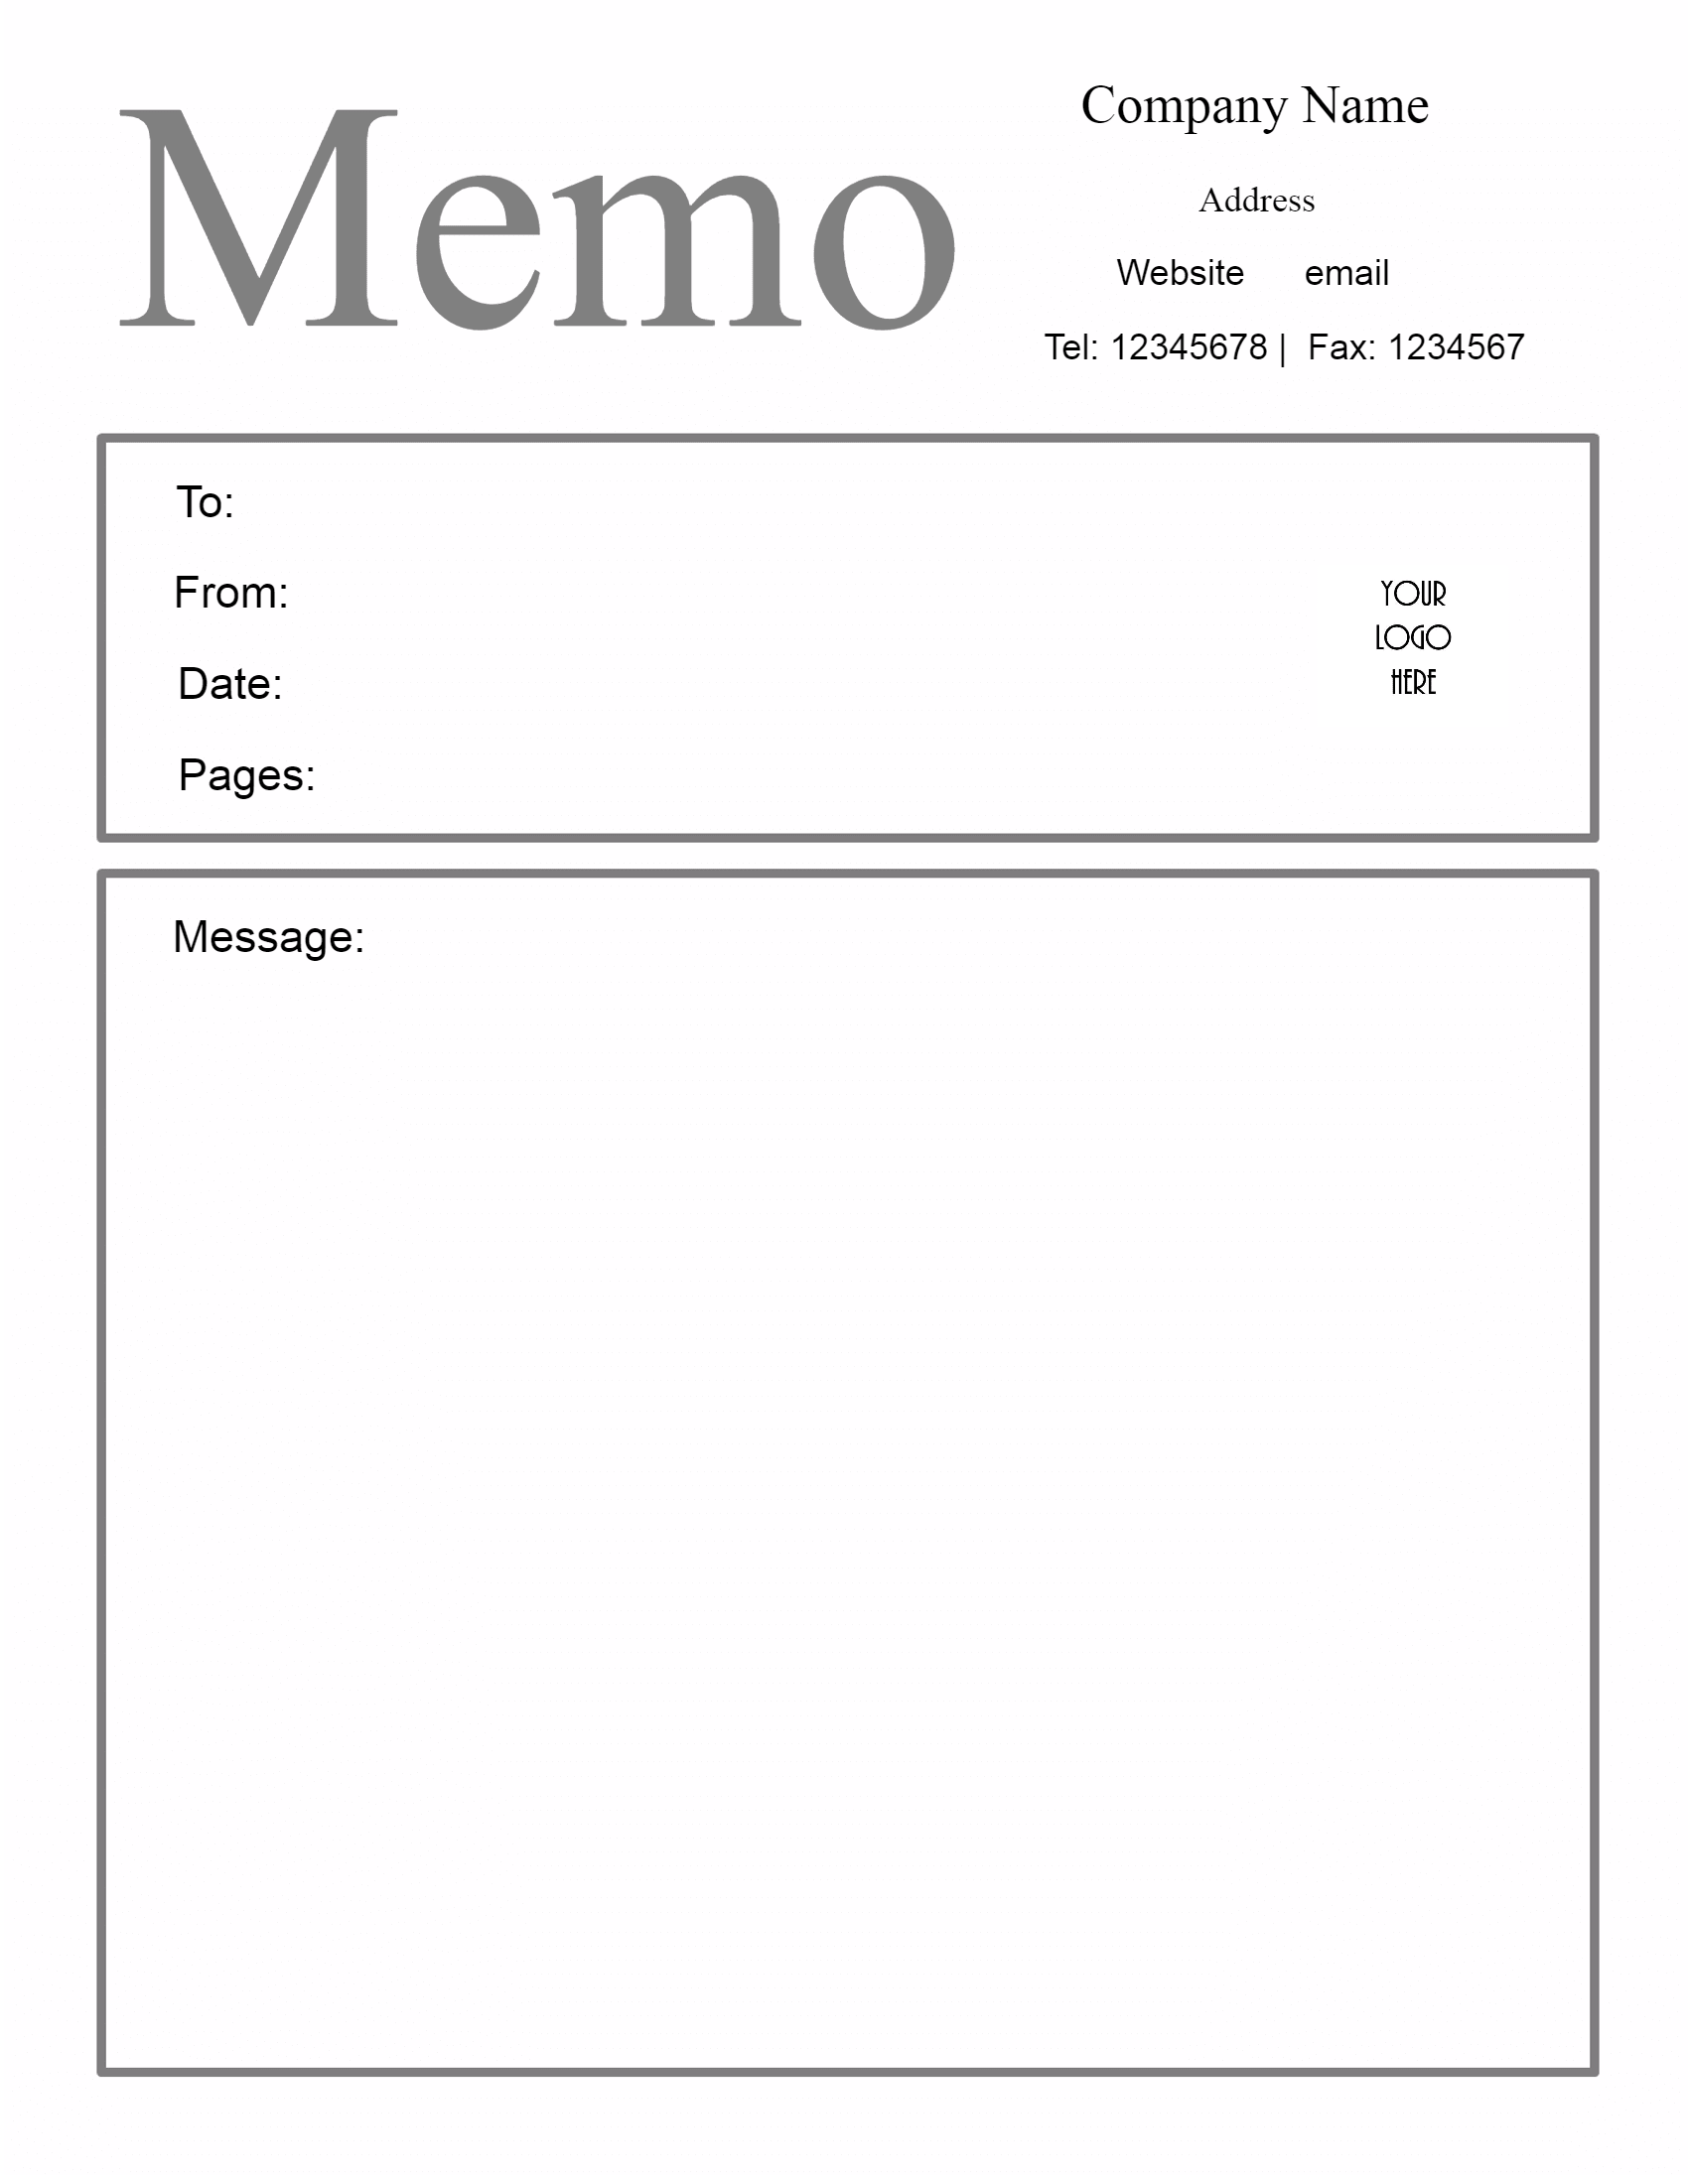 Free Microsoft Word Memo Template – Memo Templates for Word